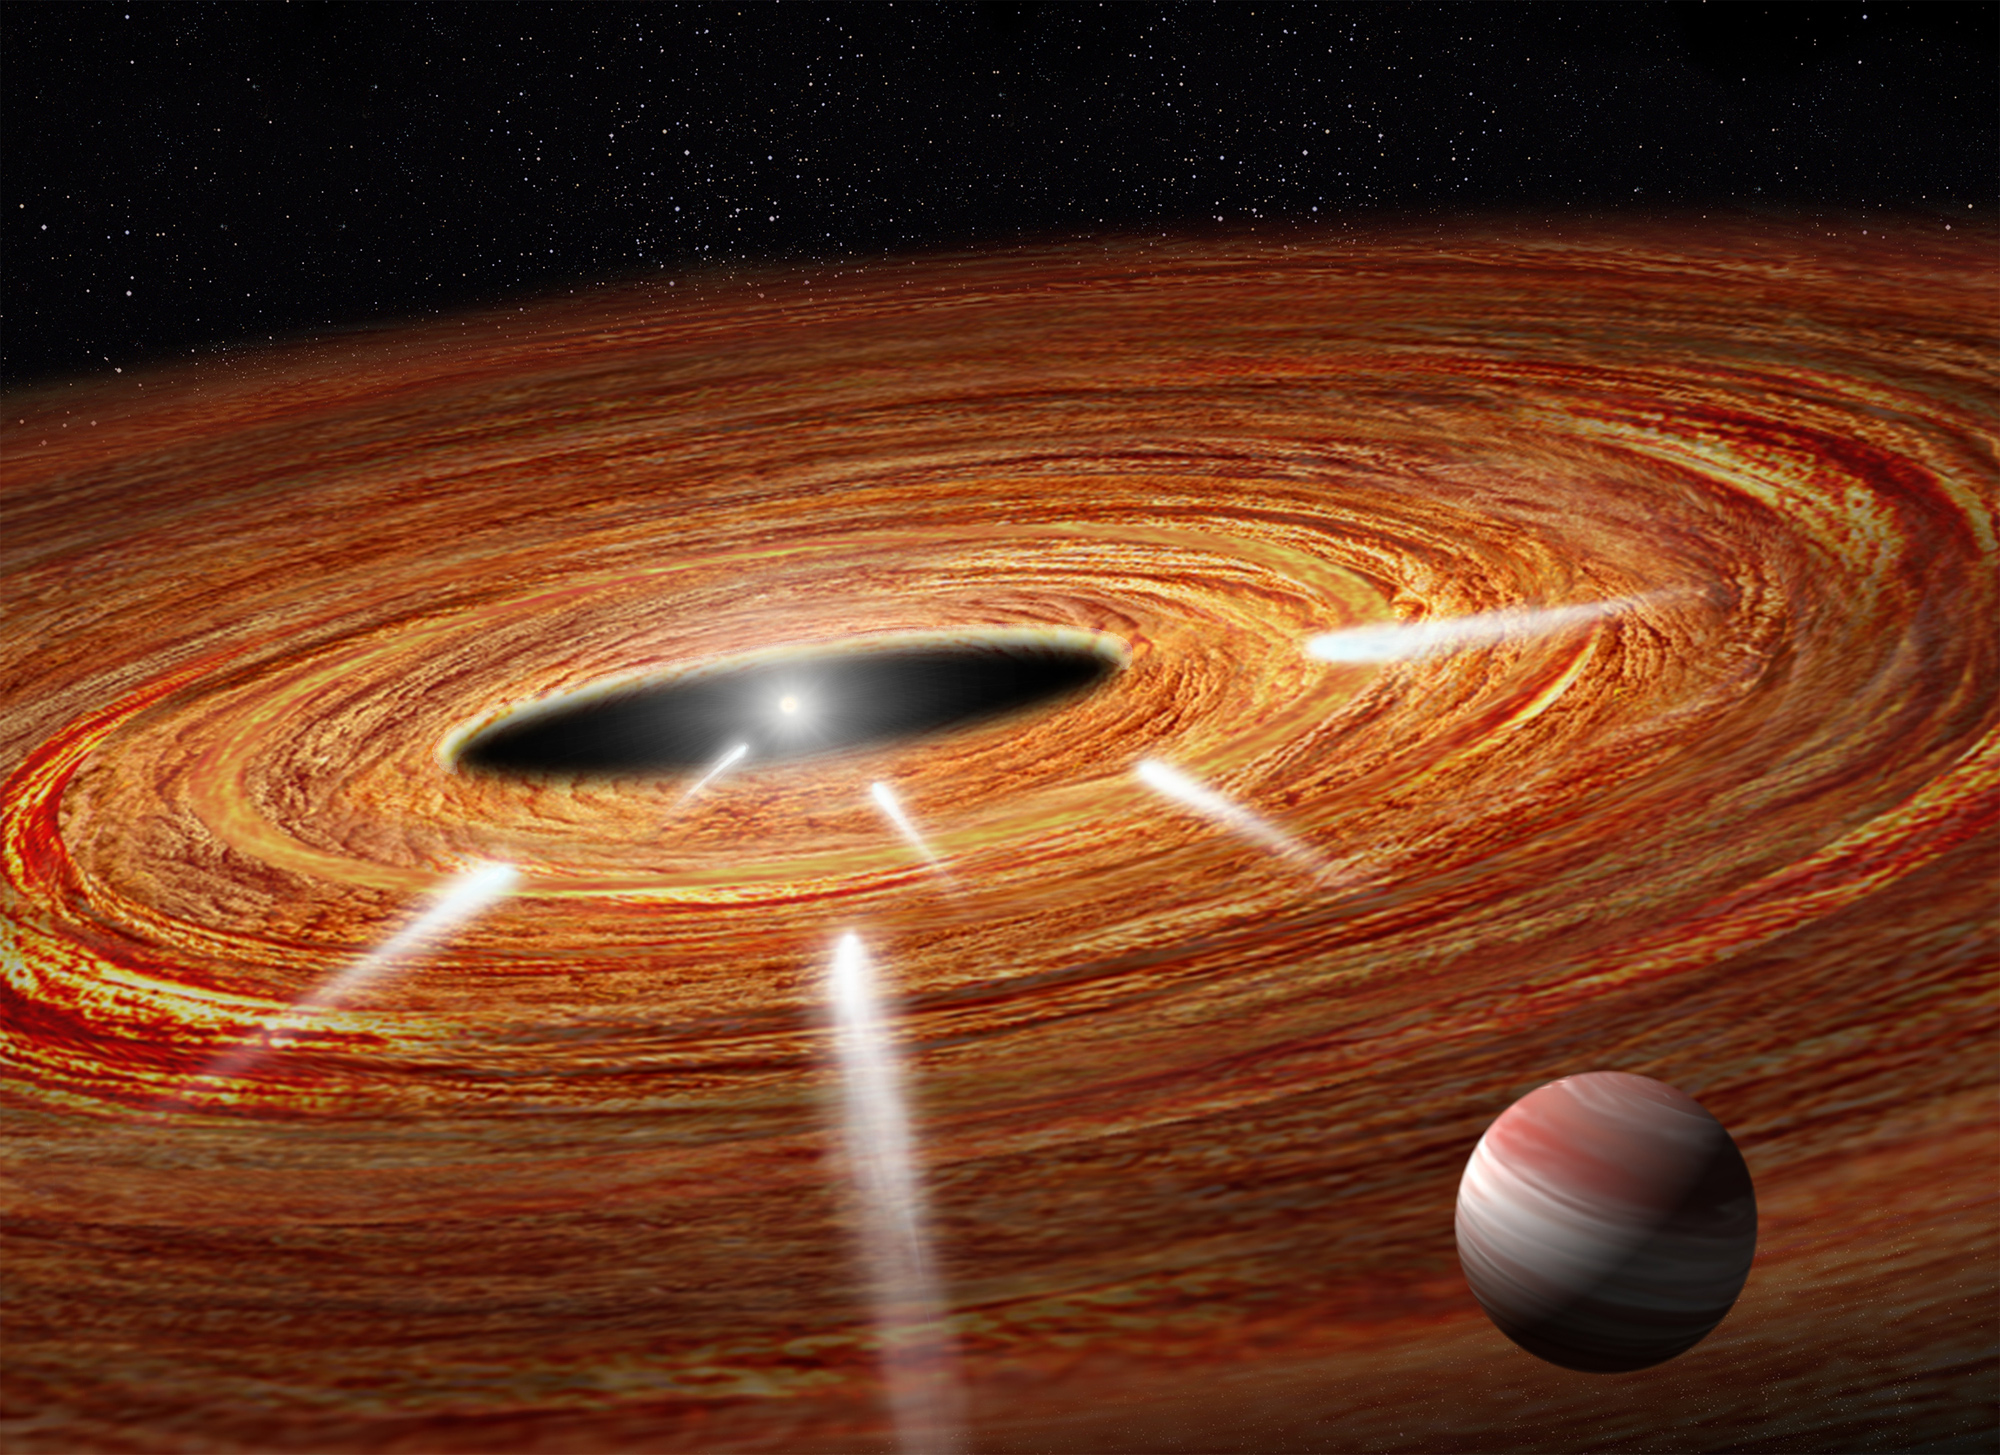 Hubble Spies Exocomets Diving into Young Star